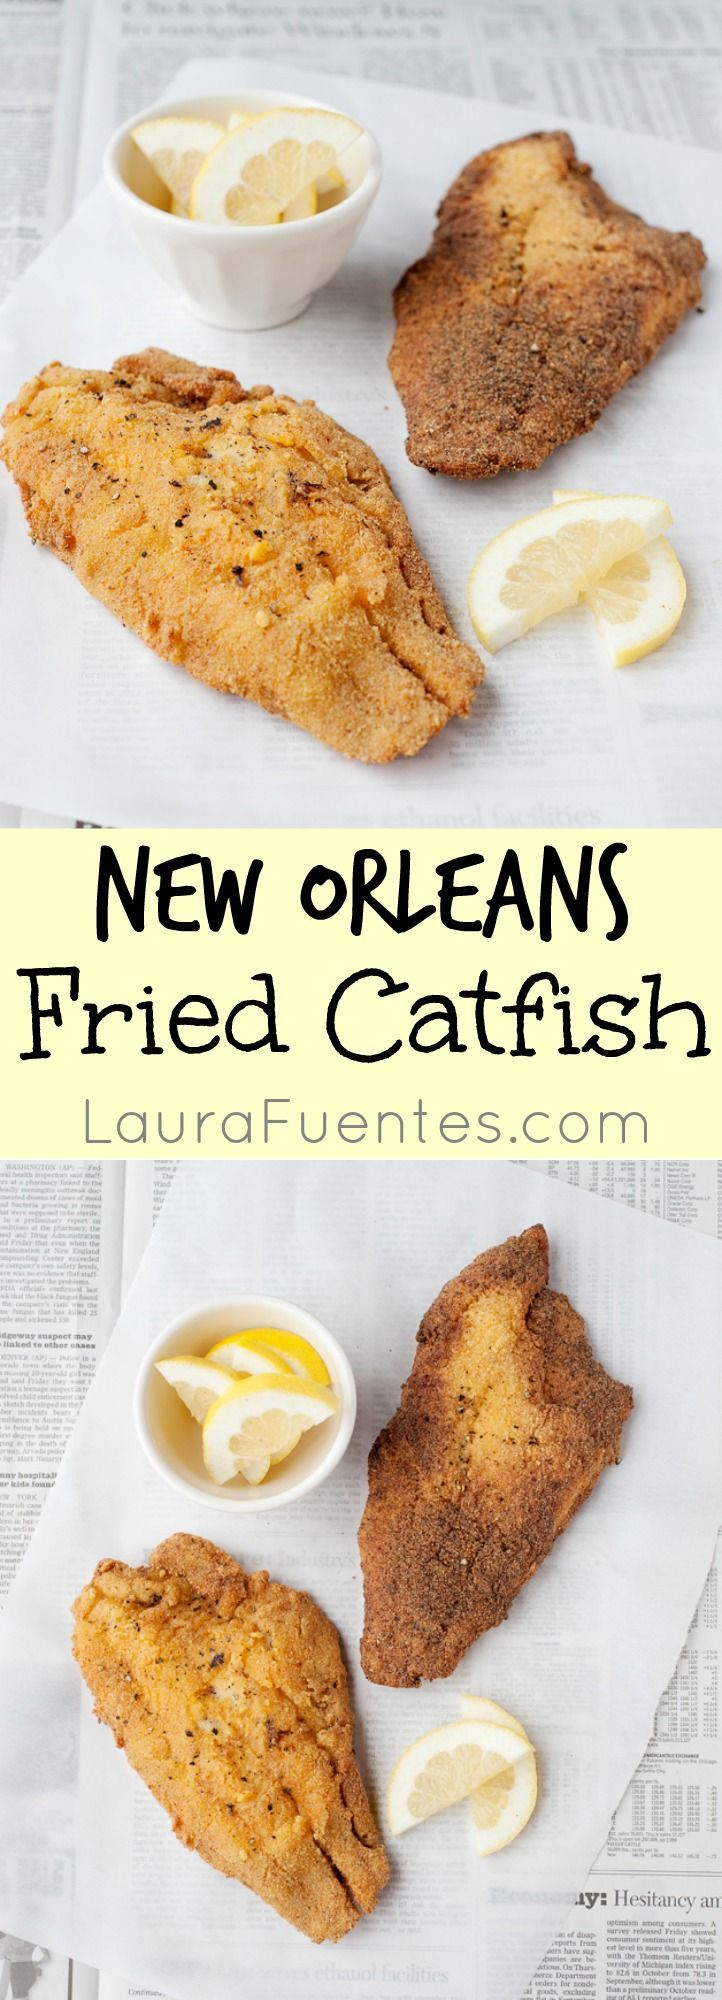 A good batter is what sets fried catfish apart, and this New Orleans Fried Catfish recipe is one you'll make often. With just a couple of ingredients, it's done!